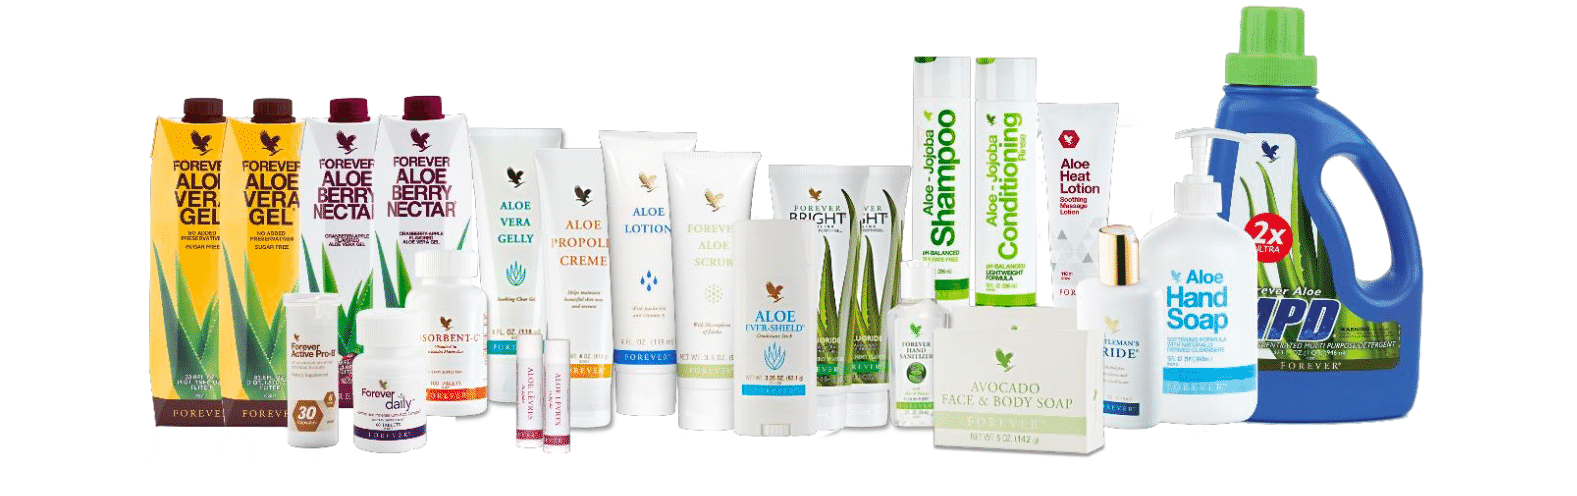 Les produits Forever Living Products